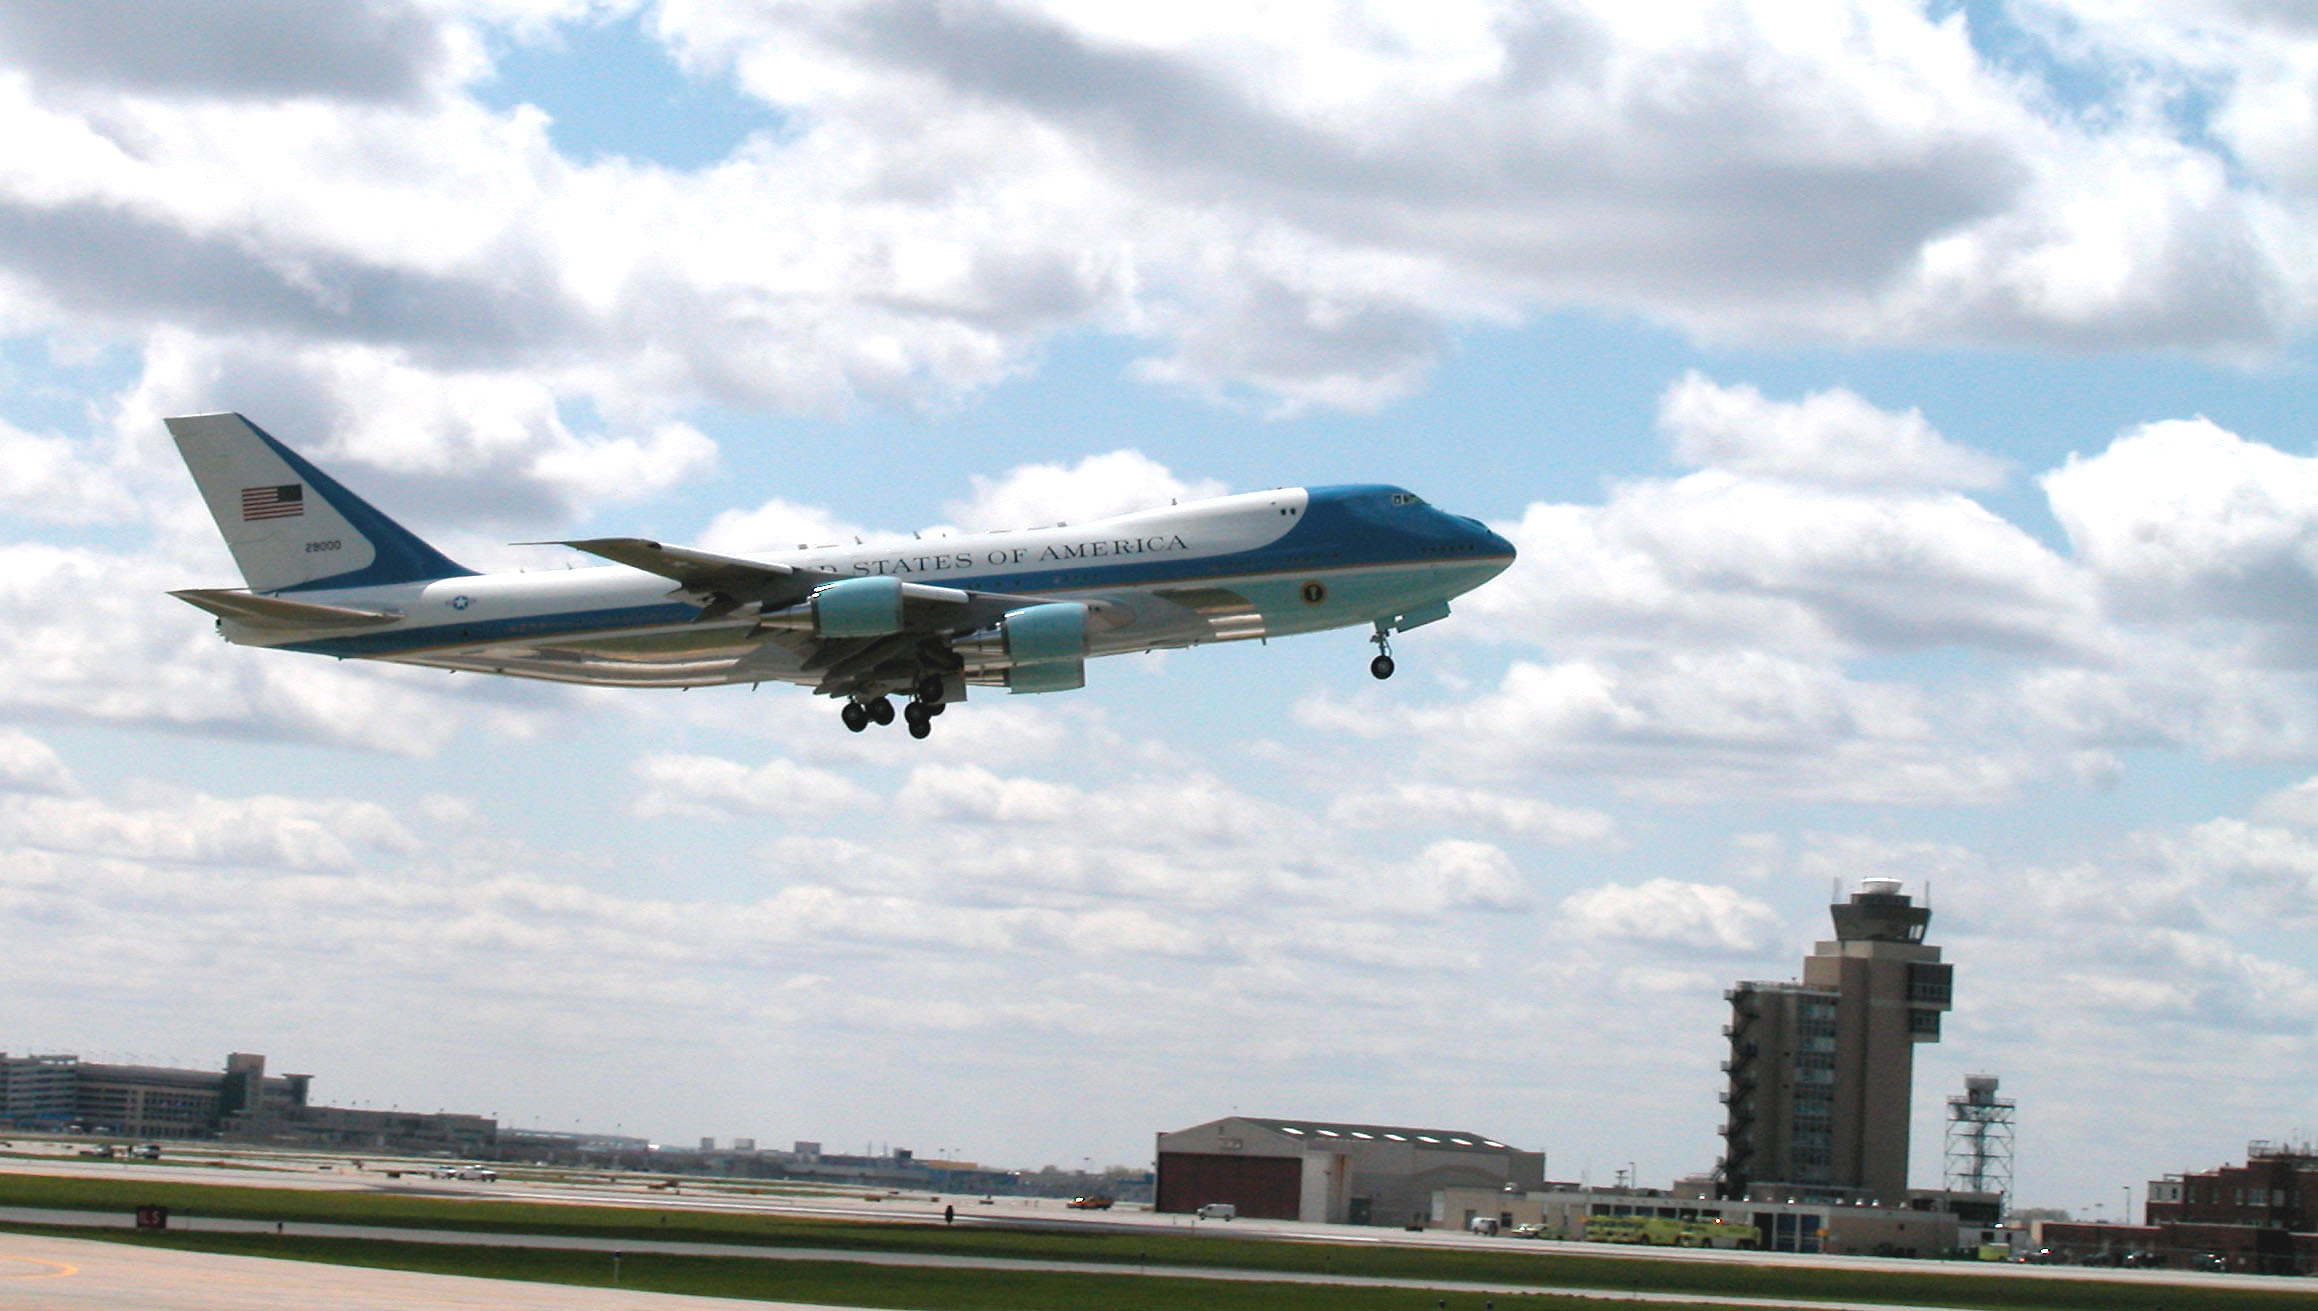 VC-25 Air Force One - VC-25 Air Force One shortly after takeoff.